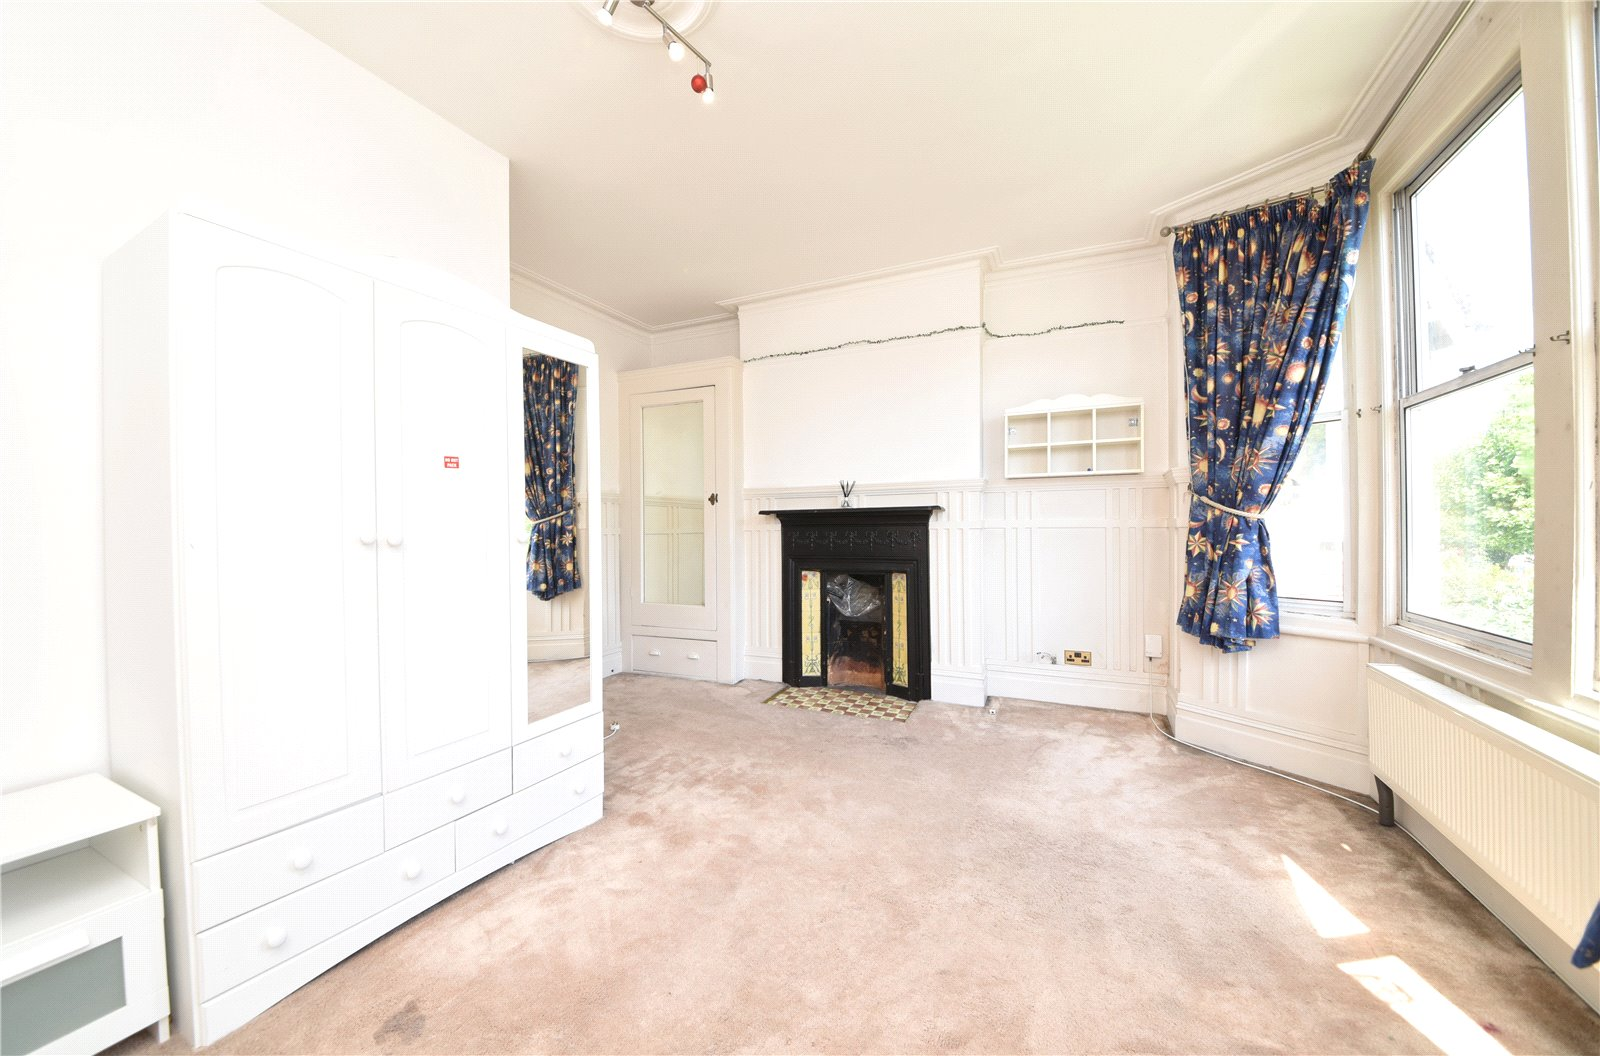 4 bed house for sale in Finchley, N3 2AR  - Property Image 7